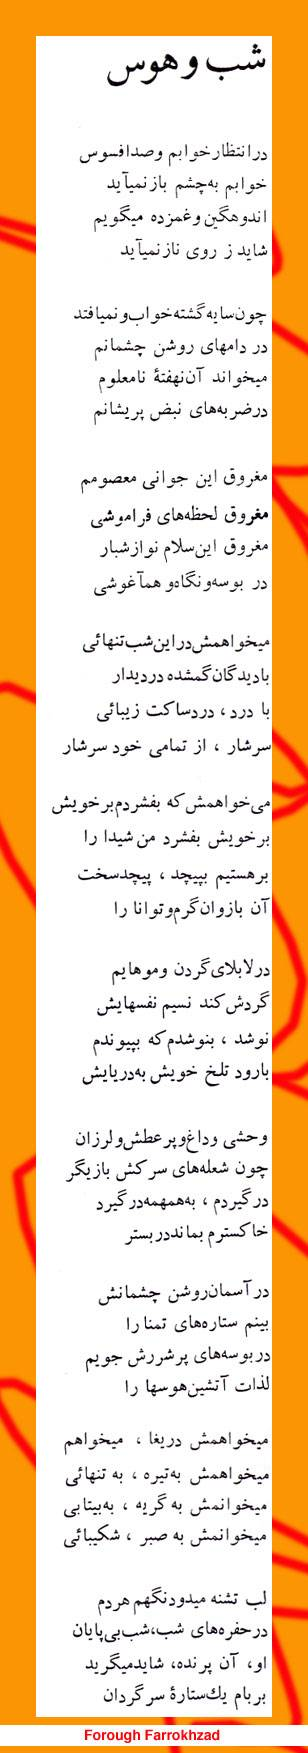 Forough Farrokhzad poems